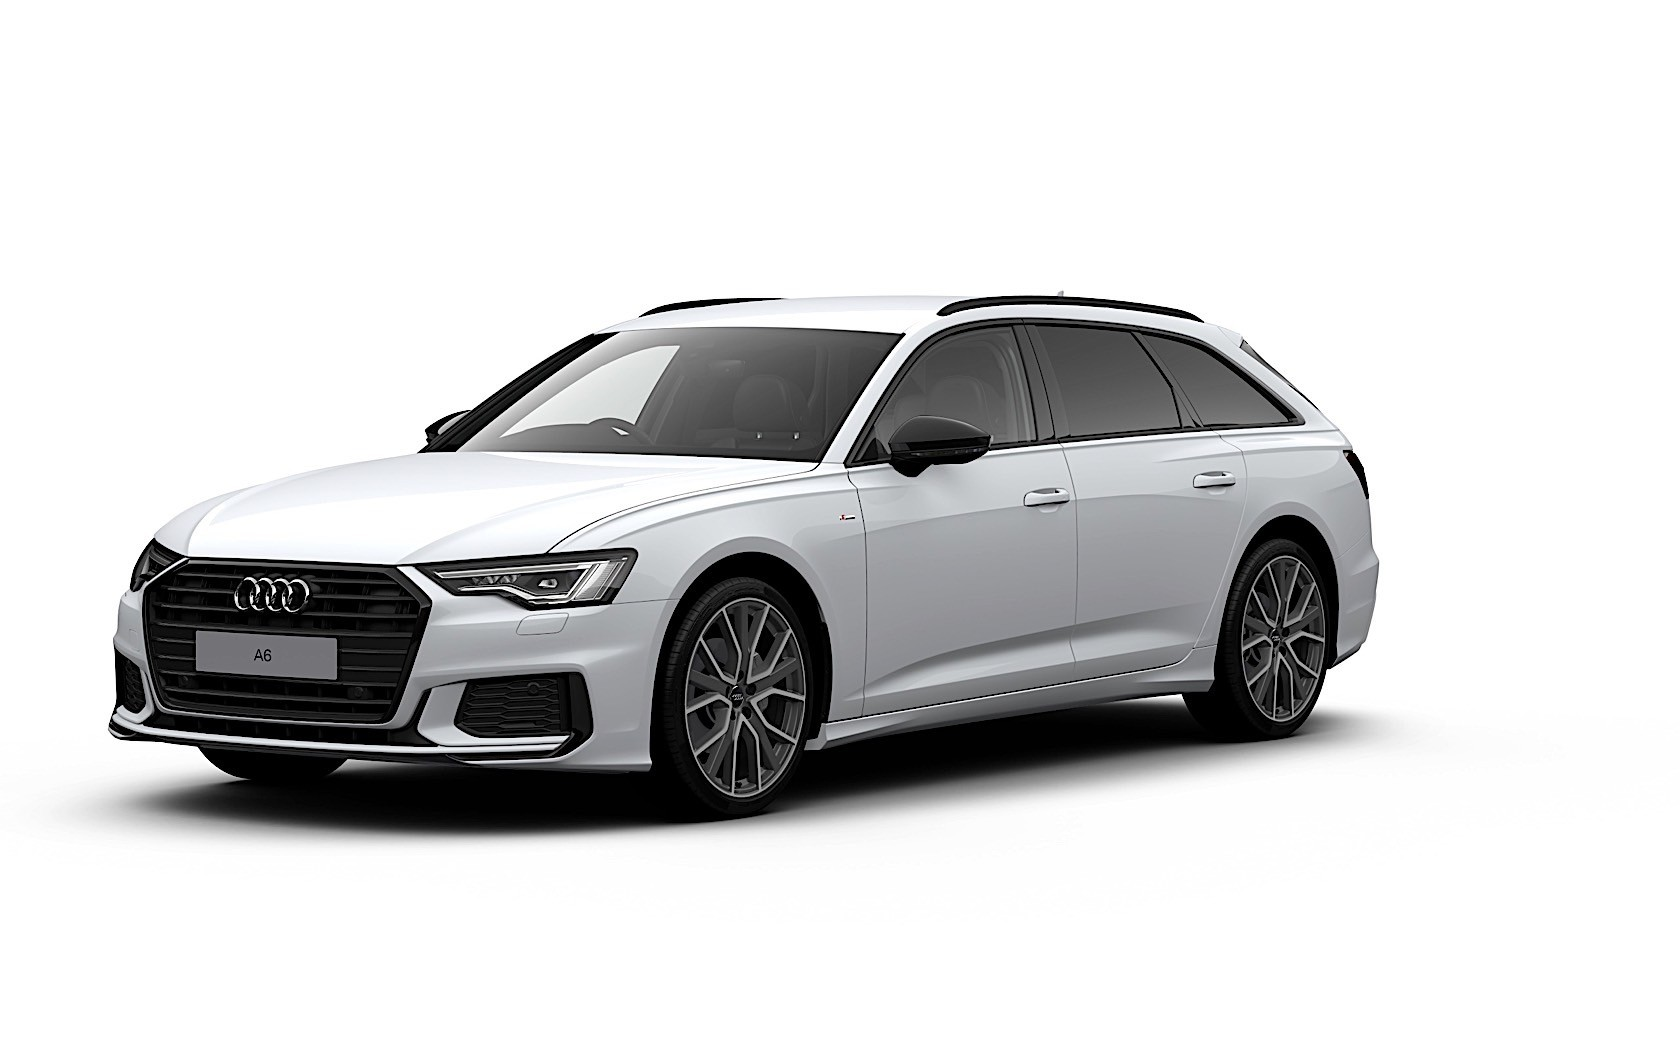 2019 Audi A6 50 Tdi Does 0 100 Kmh And Fuel Consumption Tests